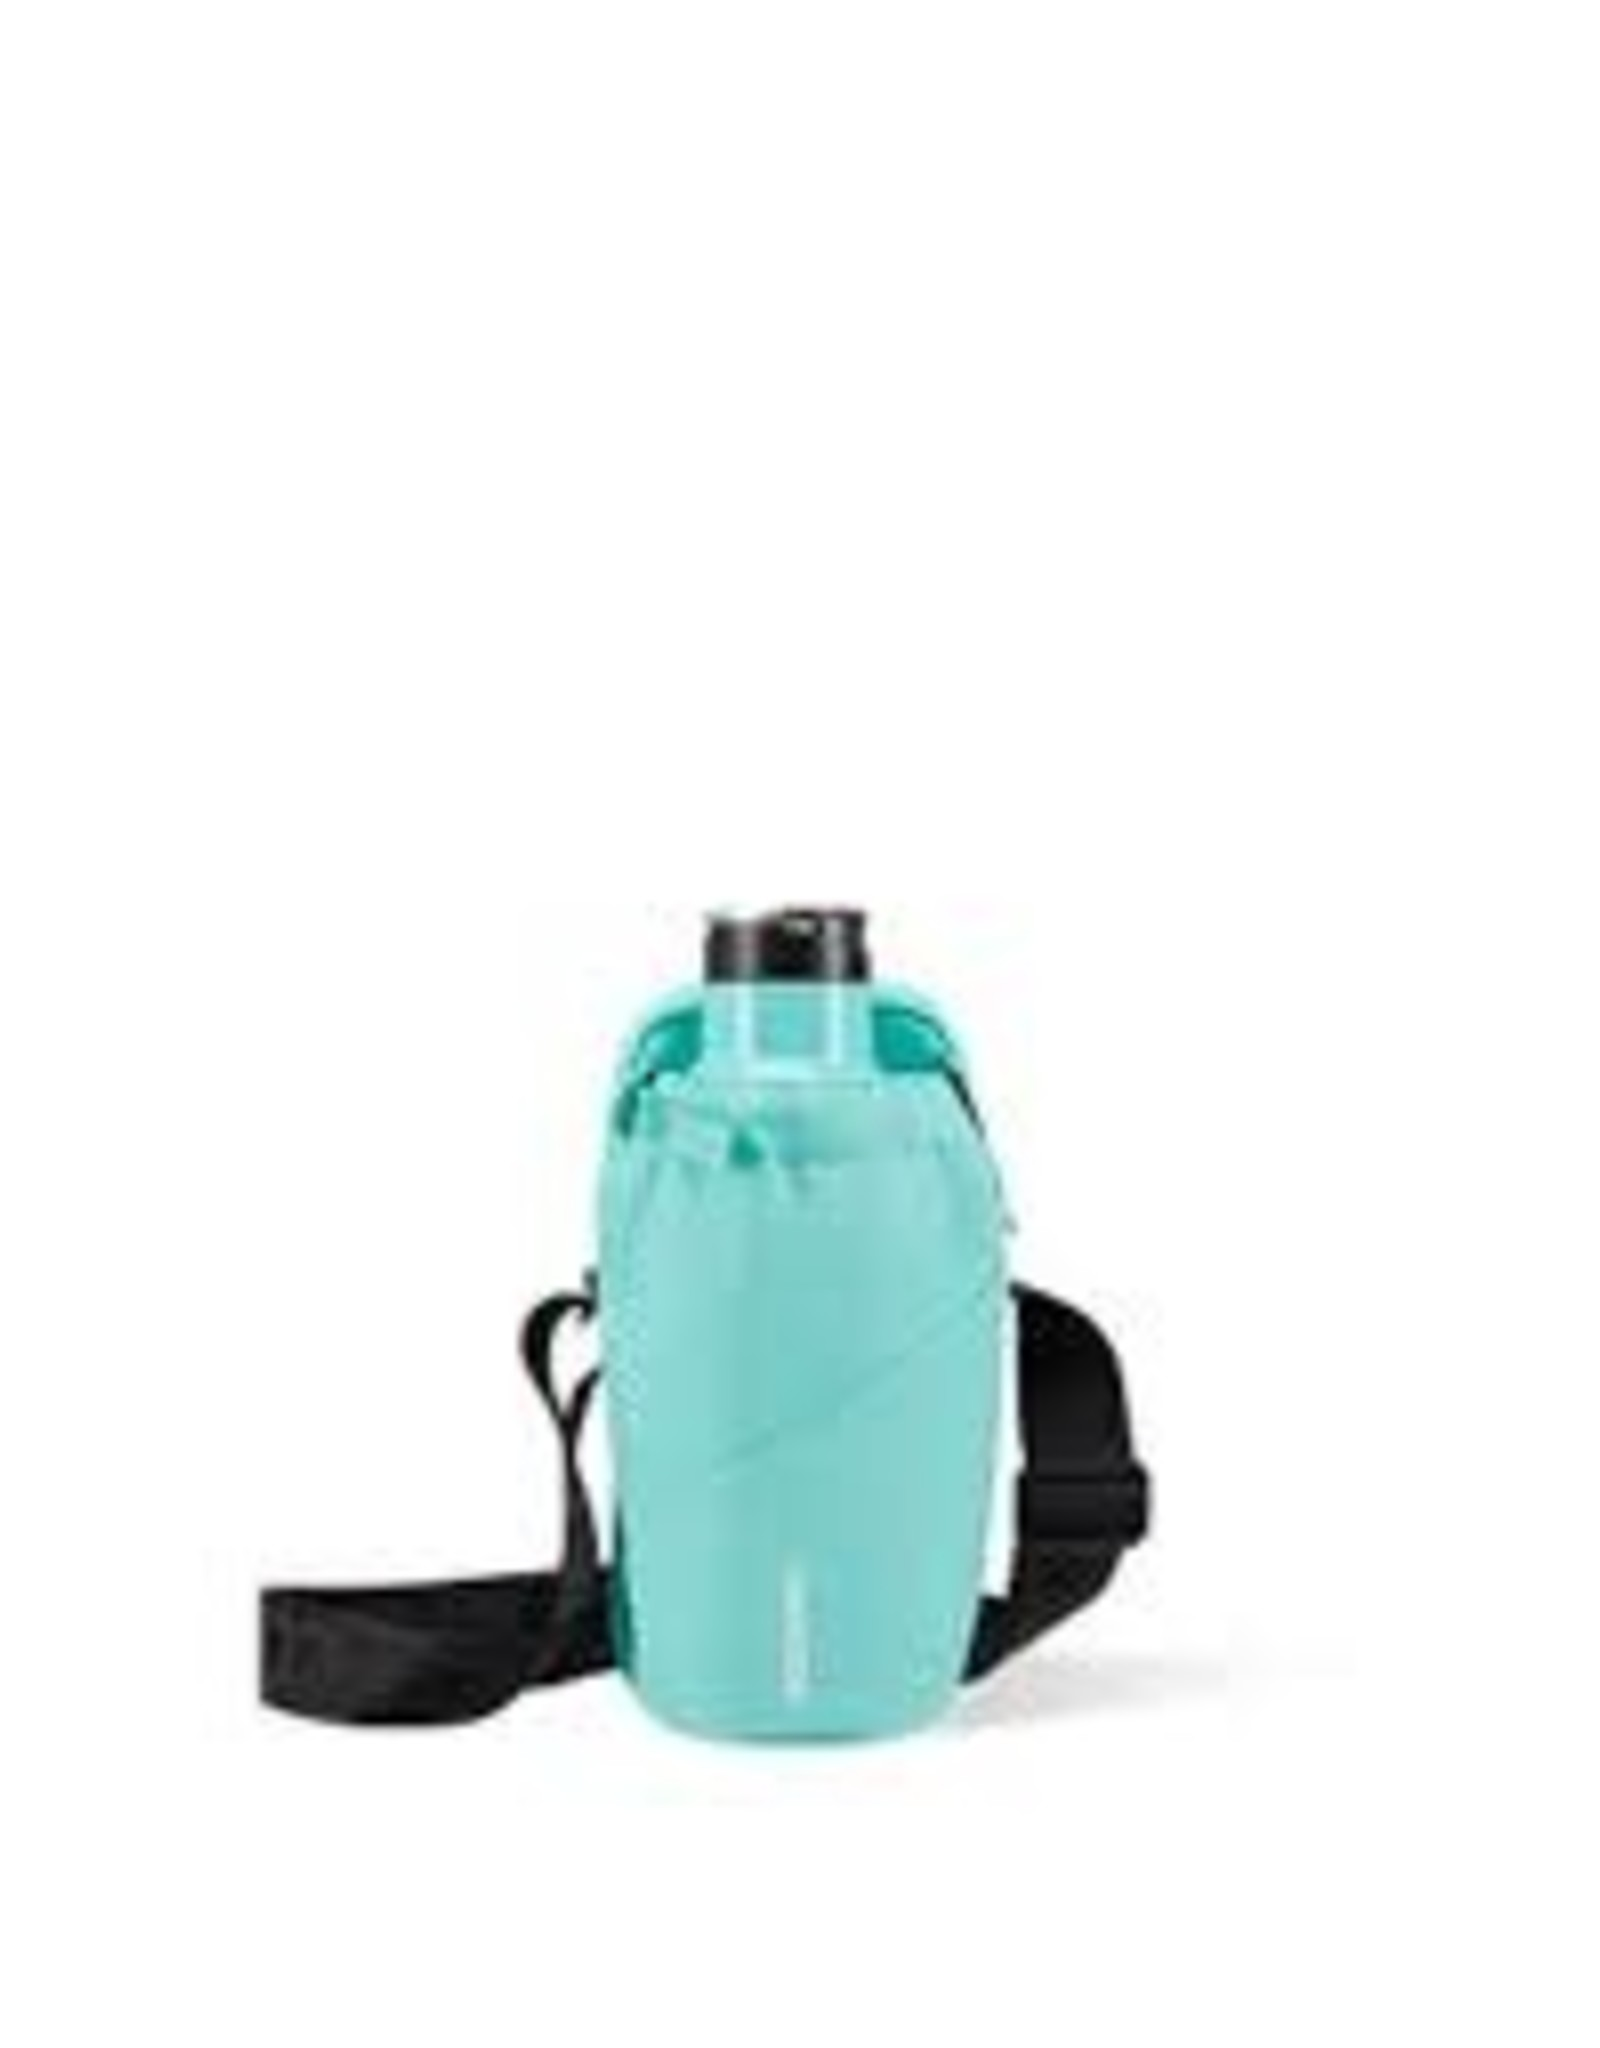 Corkcicle CORKCICLE-Sling - Turquoise